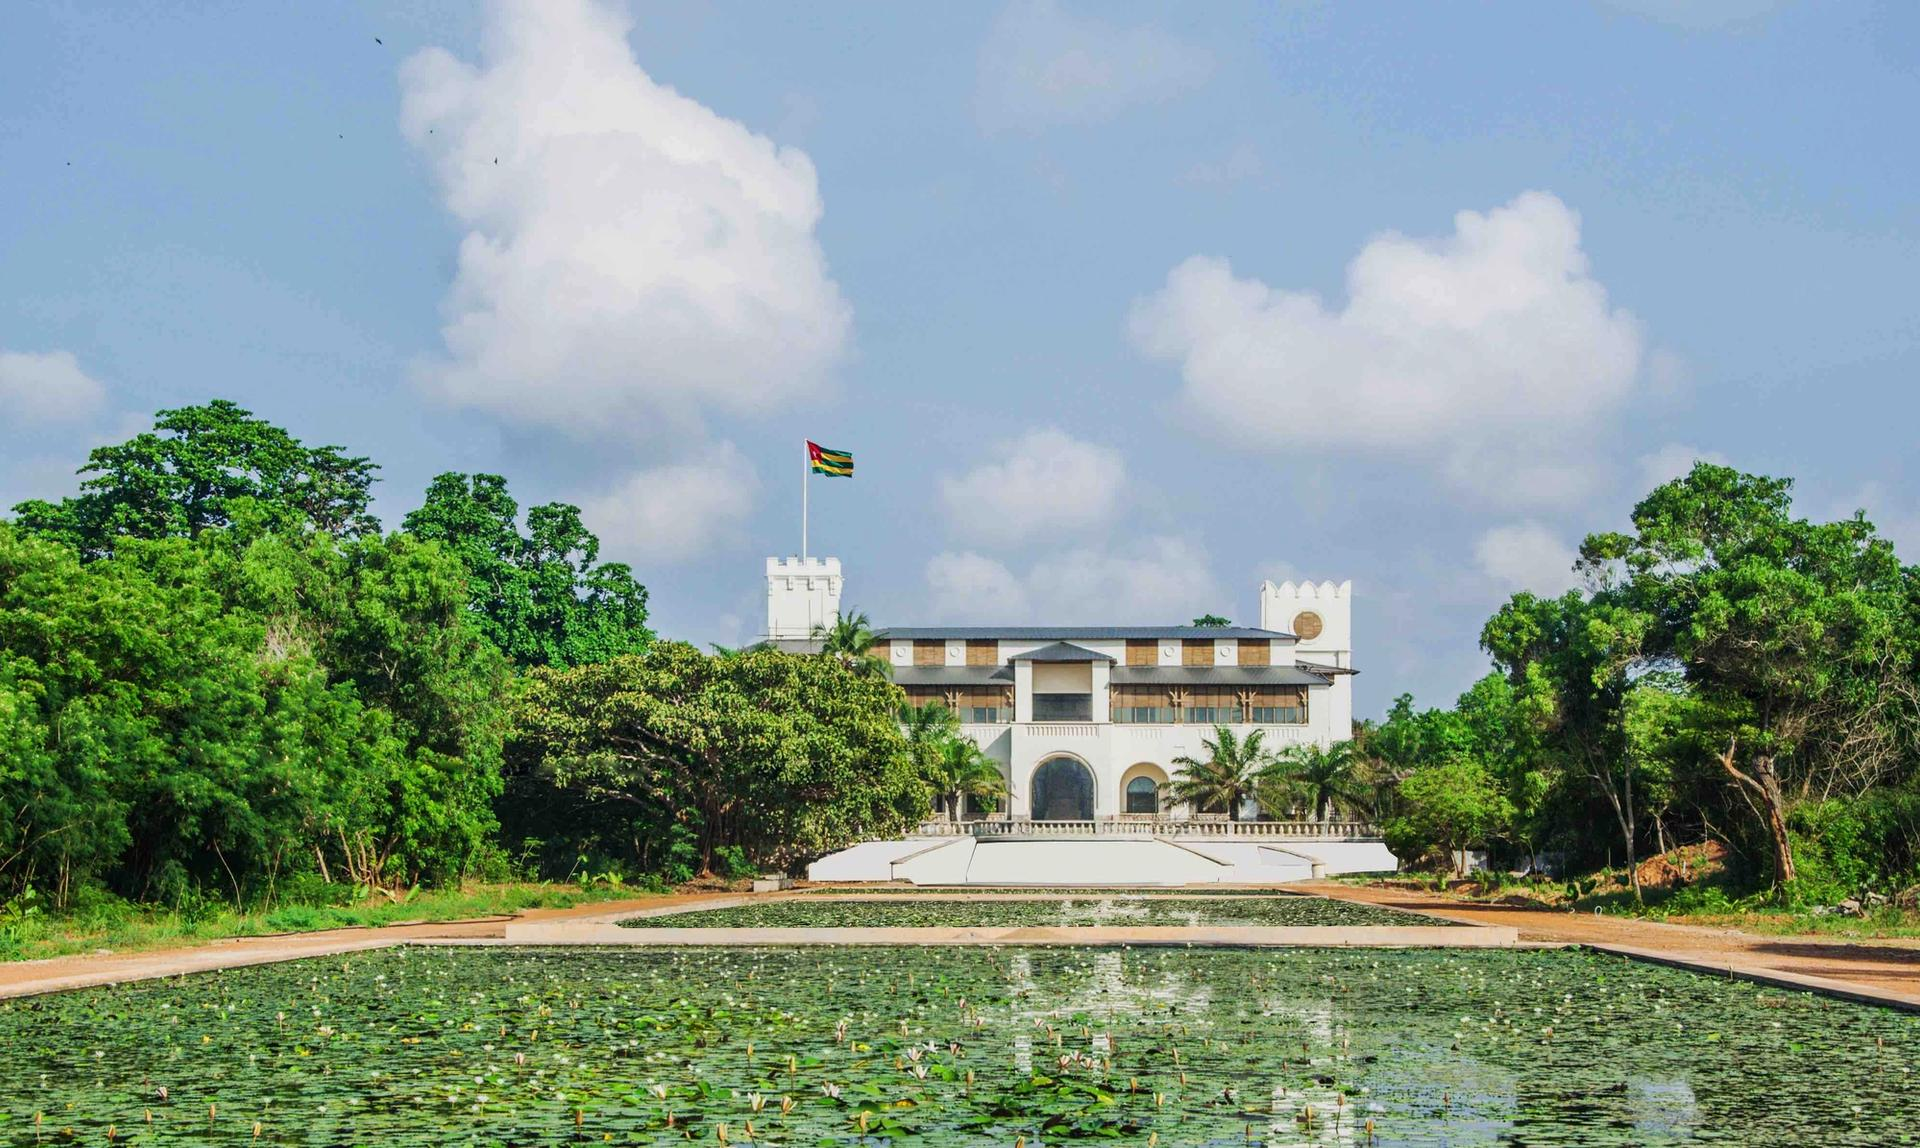 Palais de Lomé in Togo is housed in the former Governor's Palace, a remnant of the country's colonial history © 2018 - Palais de Lomé